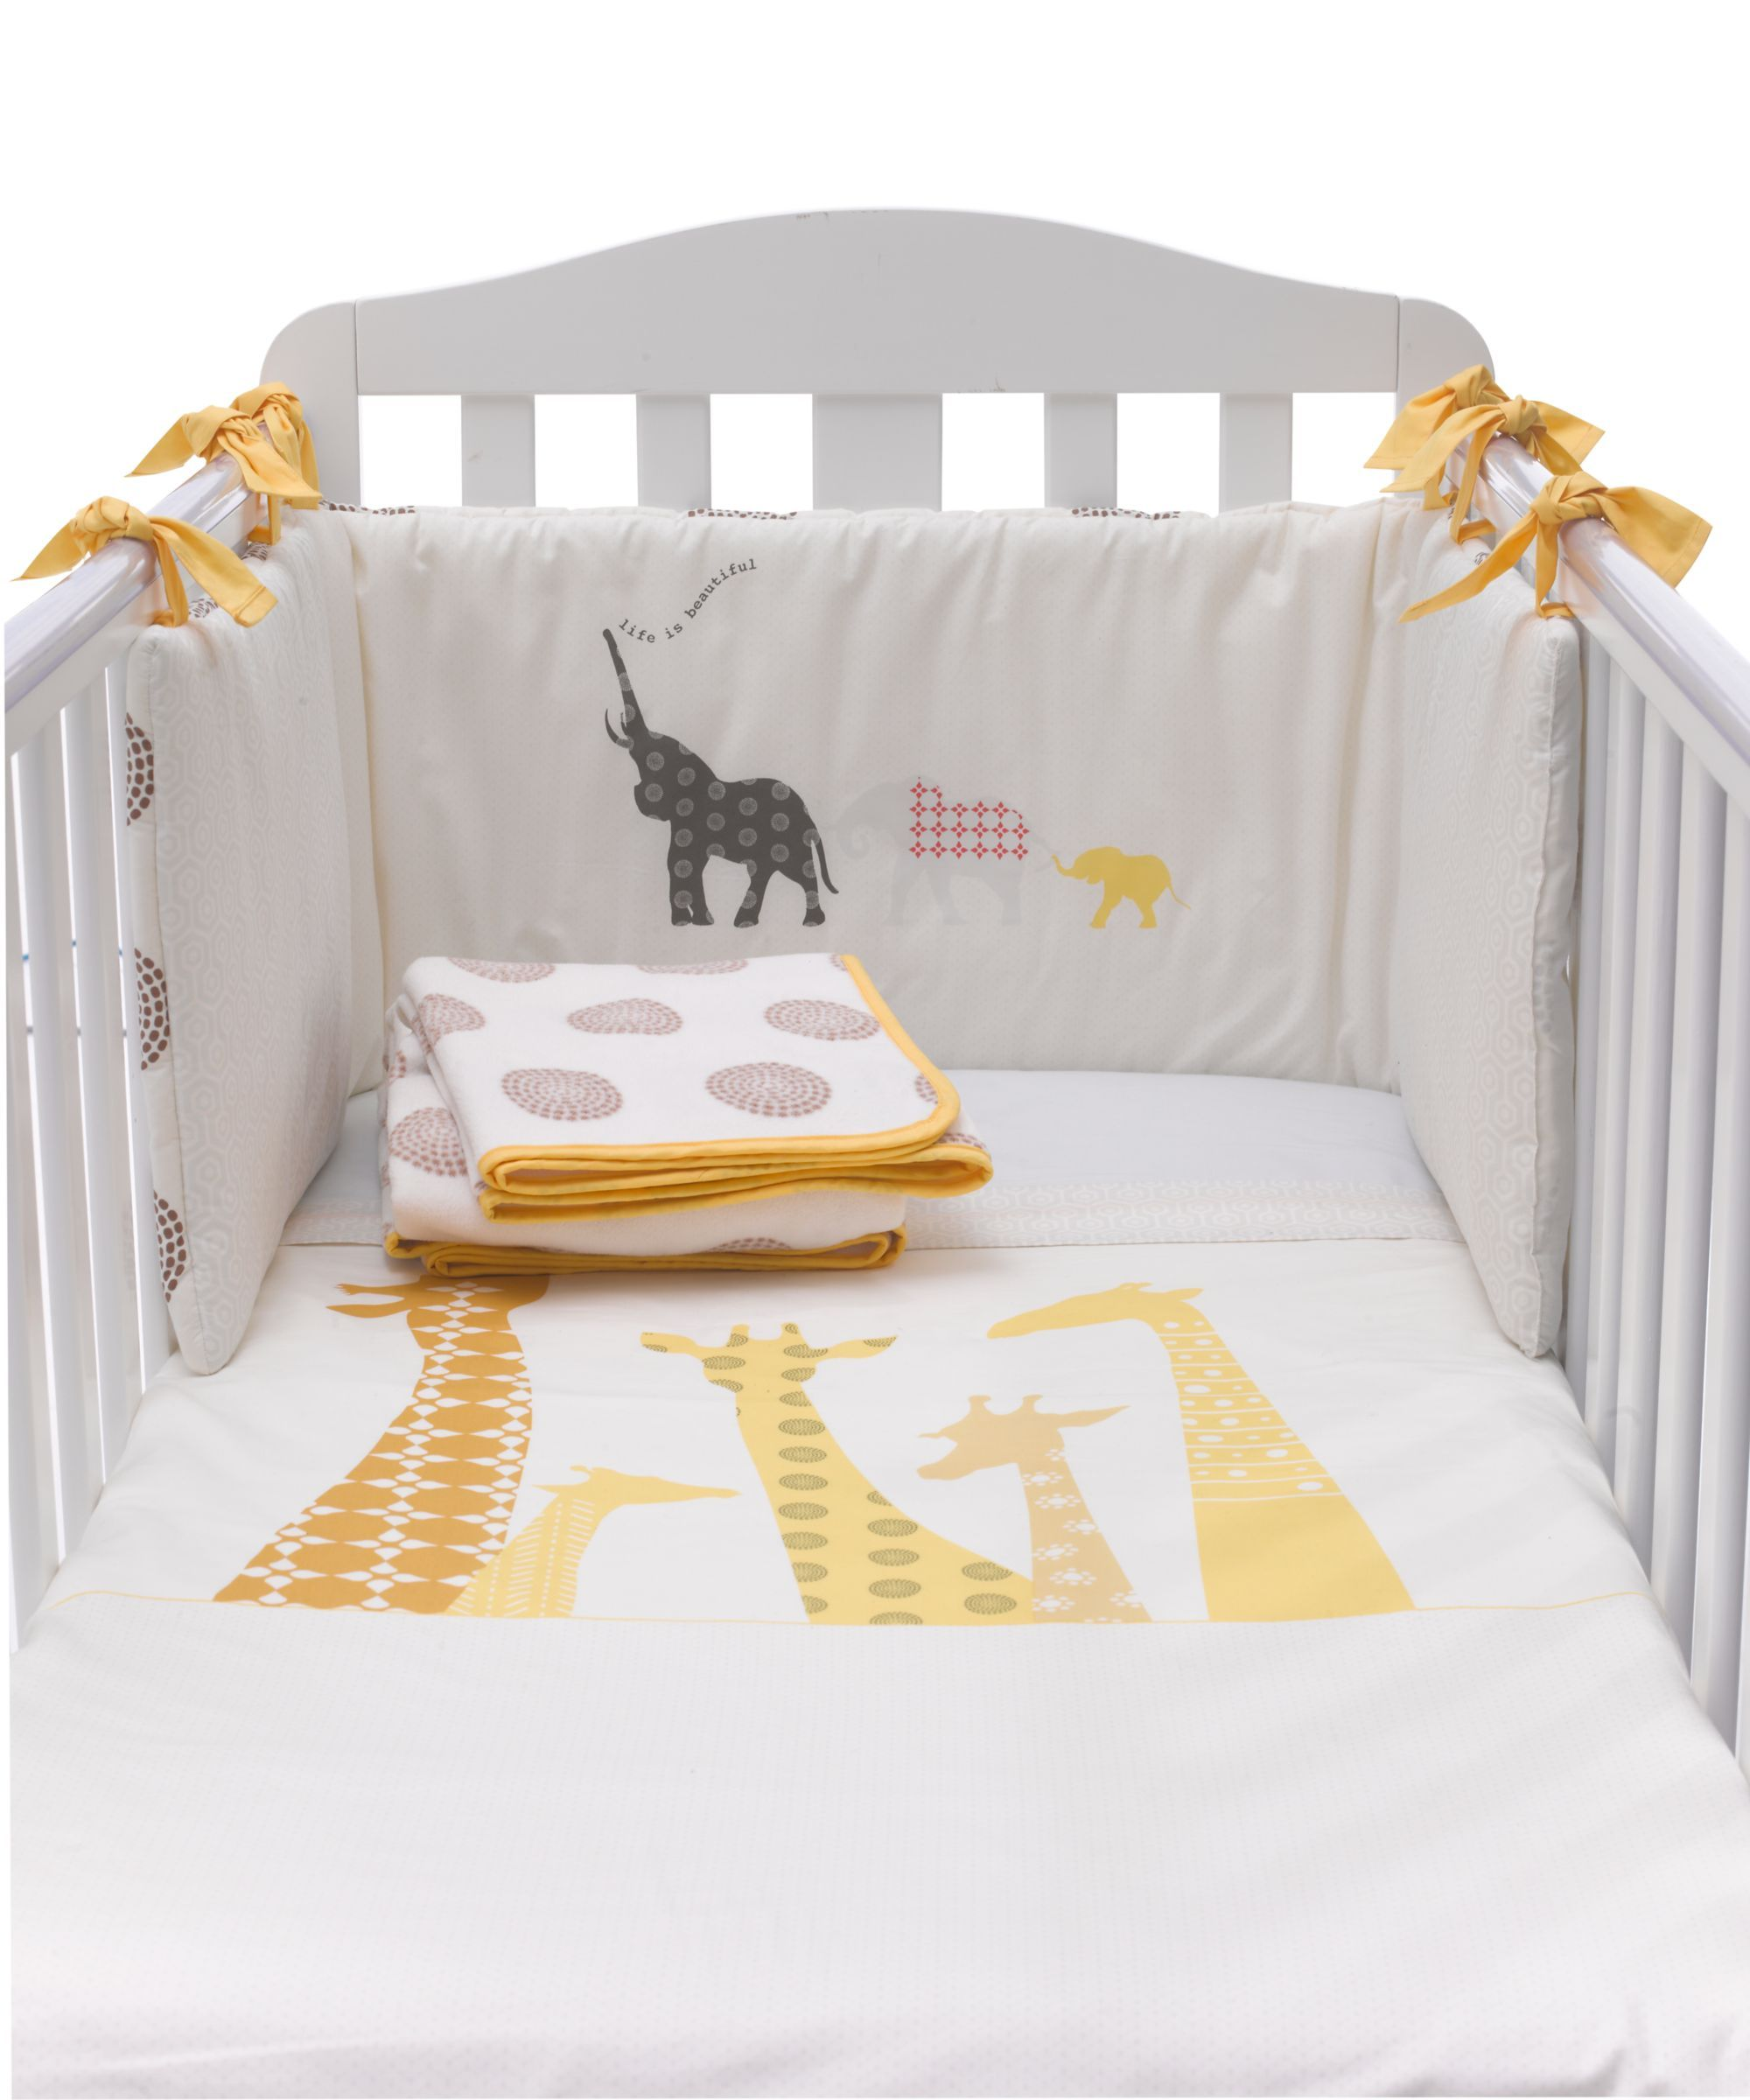 pinterest in tusk bag pin kids a mothercare bed playmats nursery